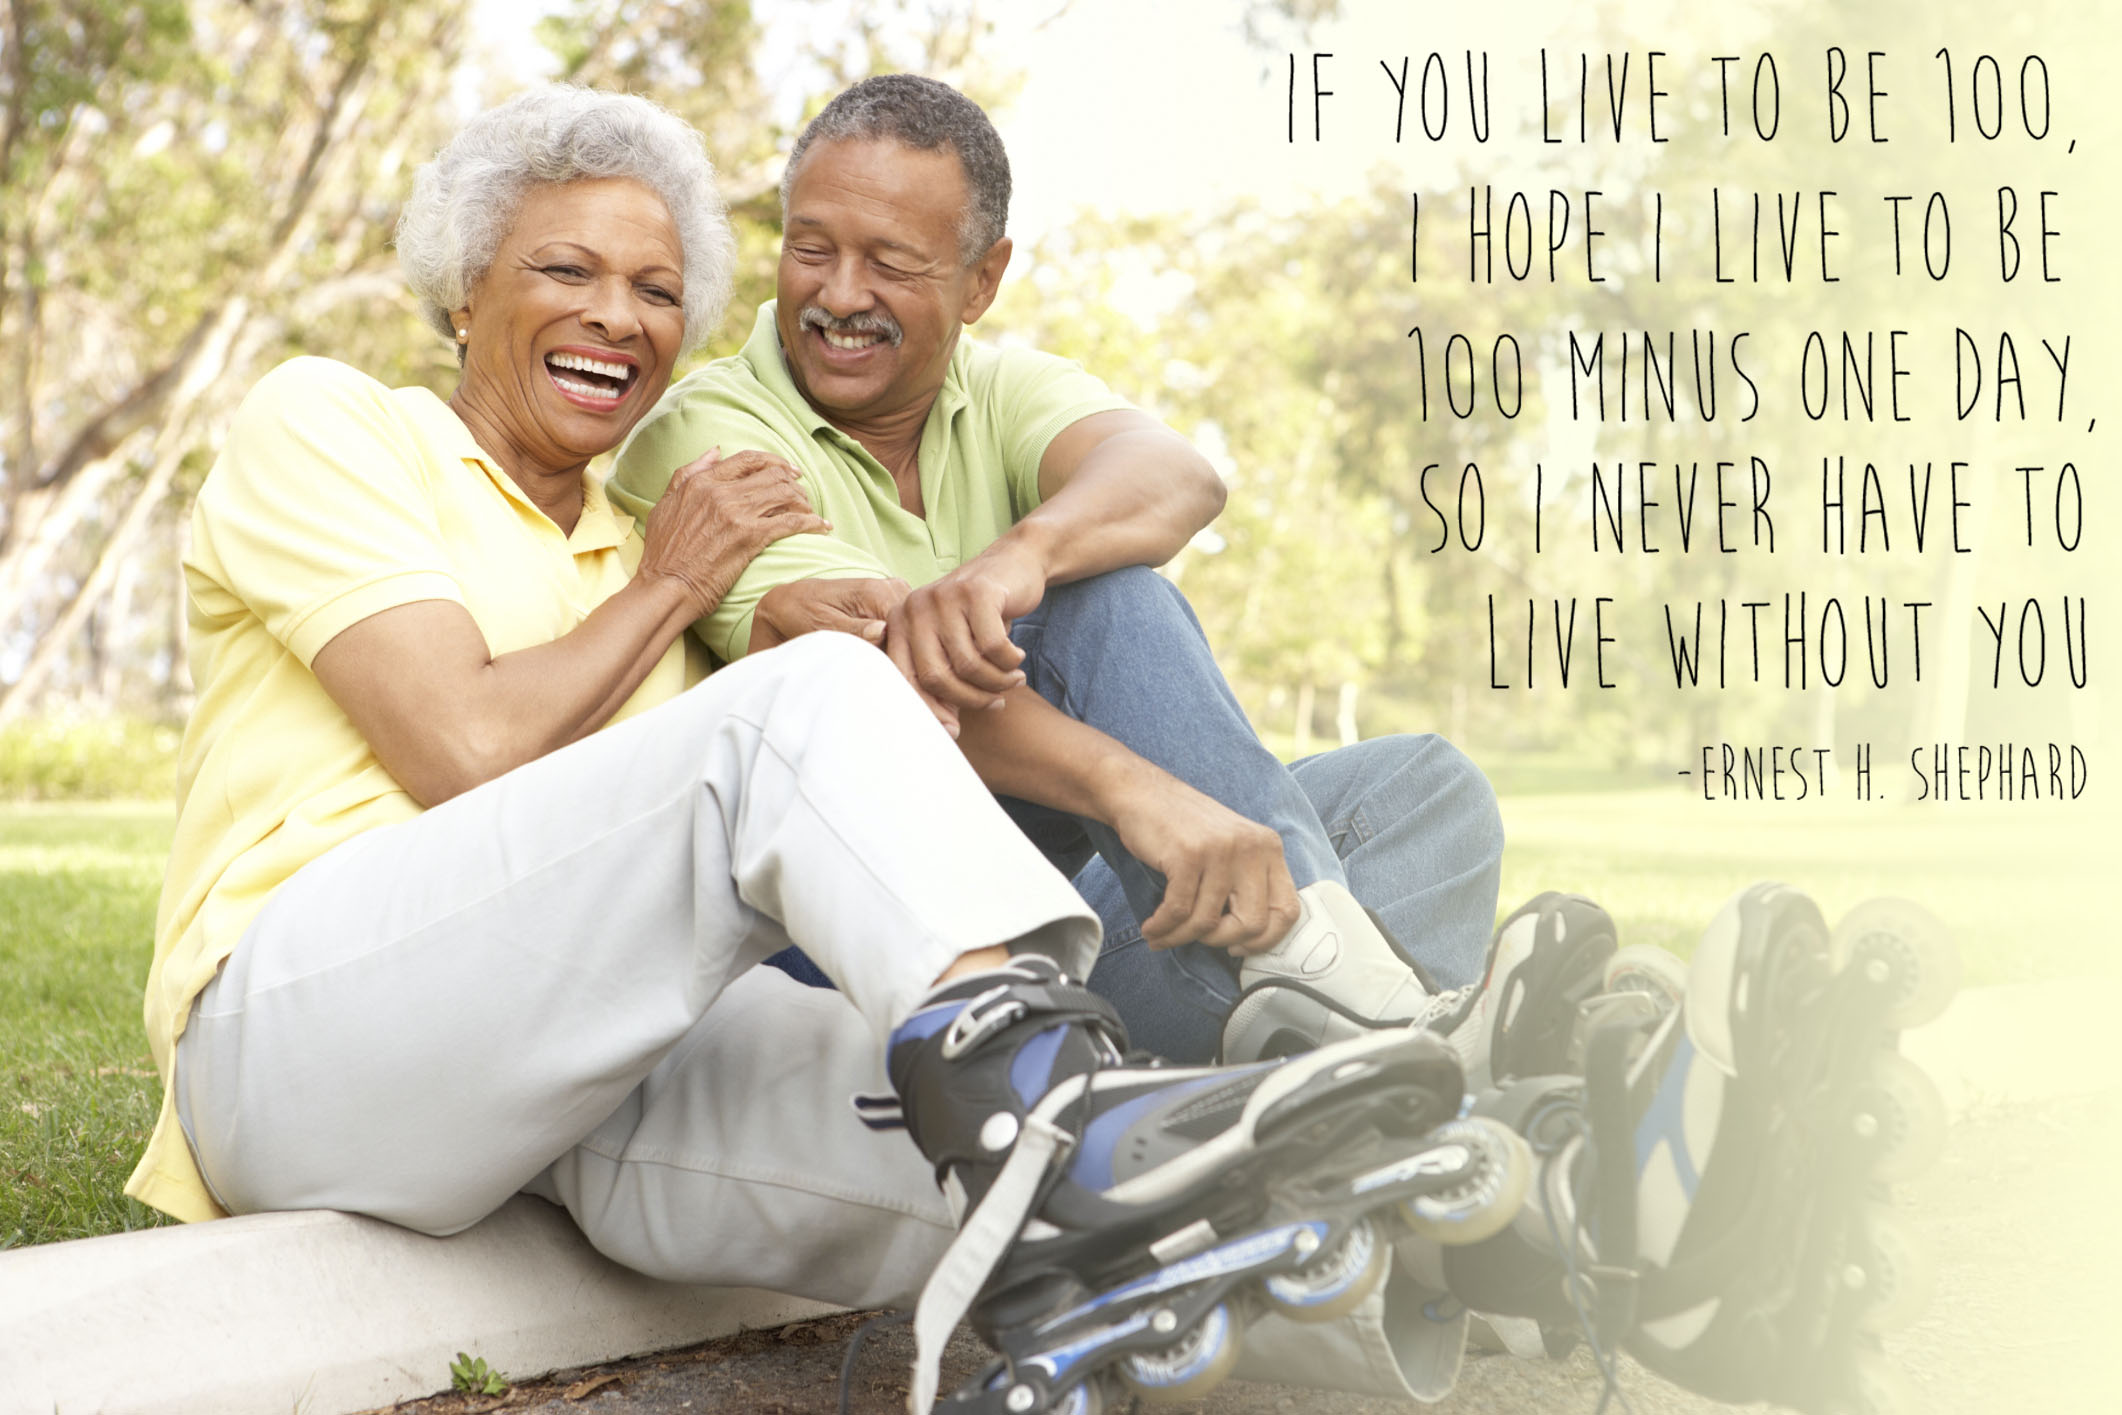 romantic-quote-live-to-be-100